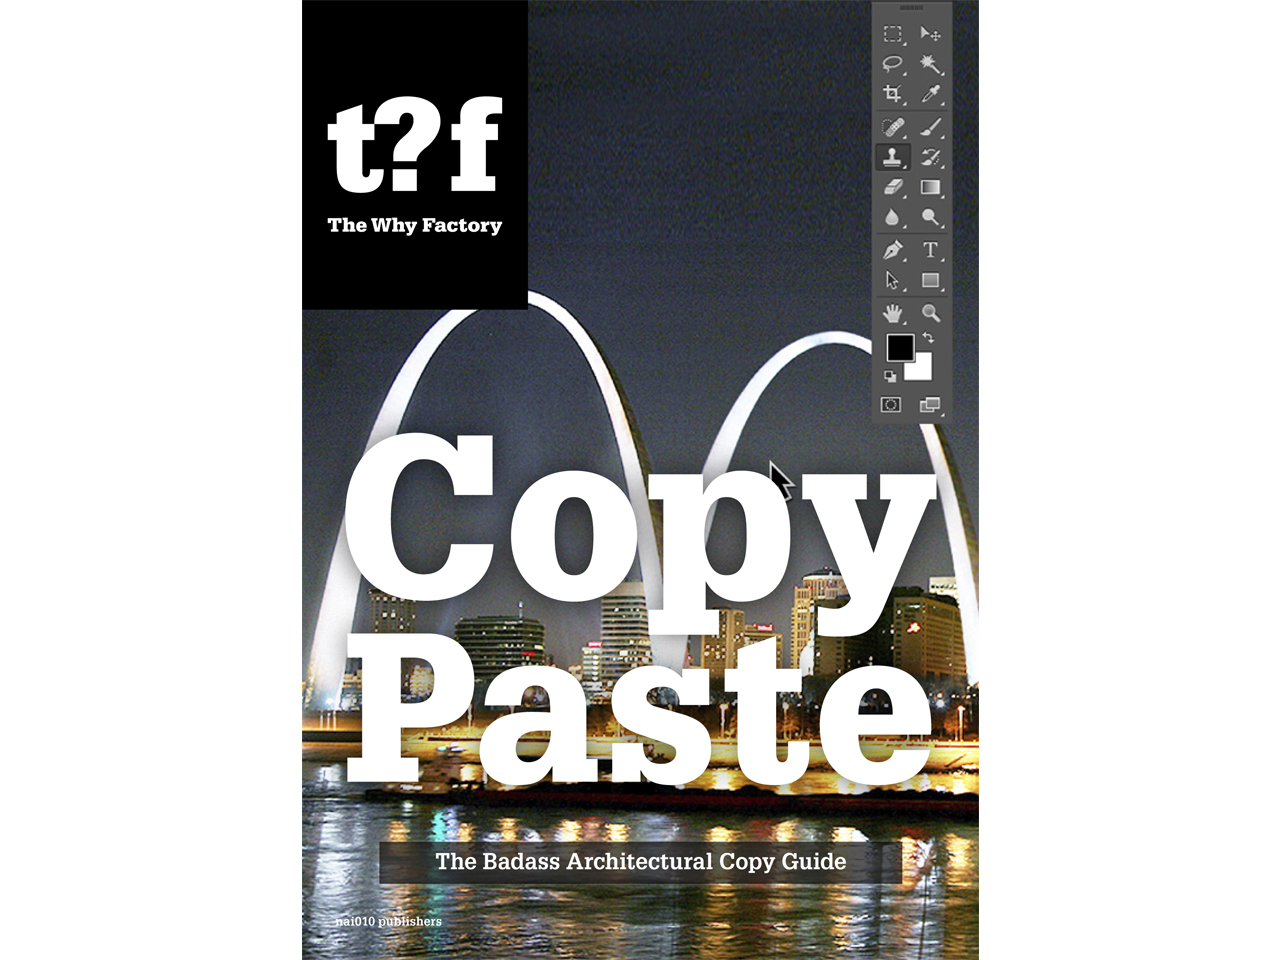 Copy Paste: The Badass Architectural Copy Guide launched by The Why Factory